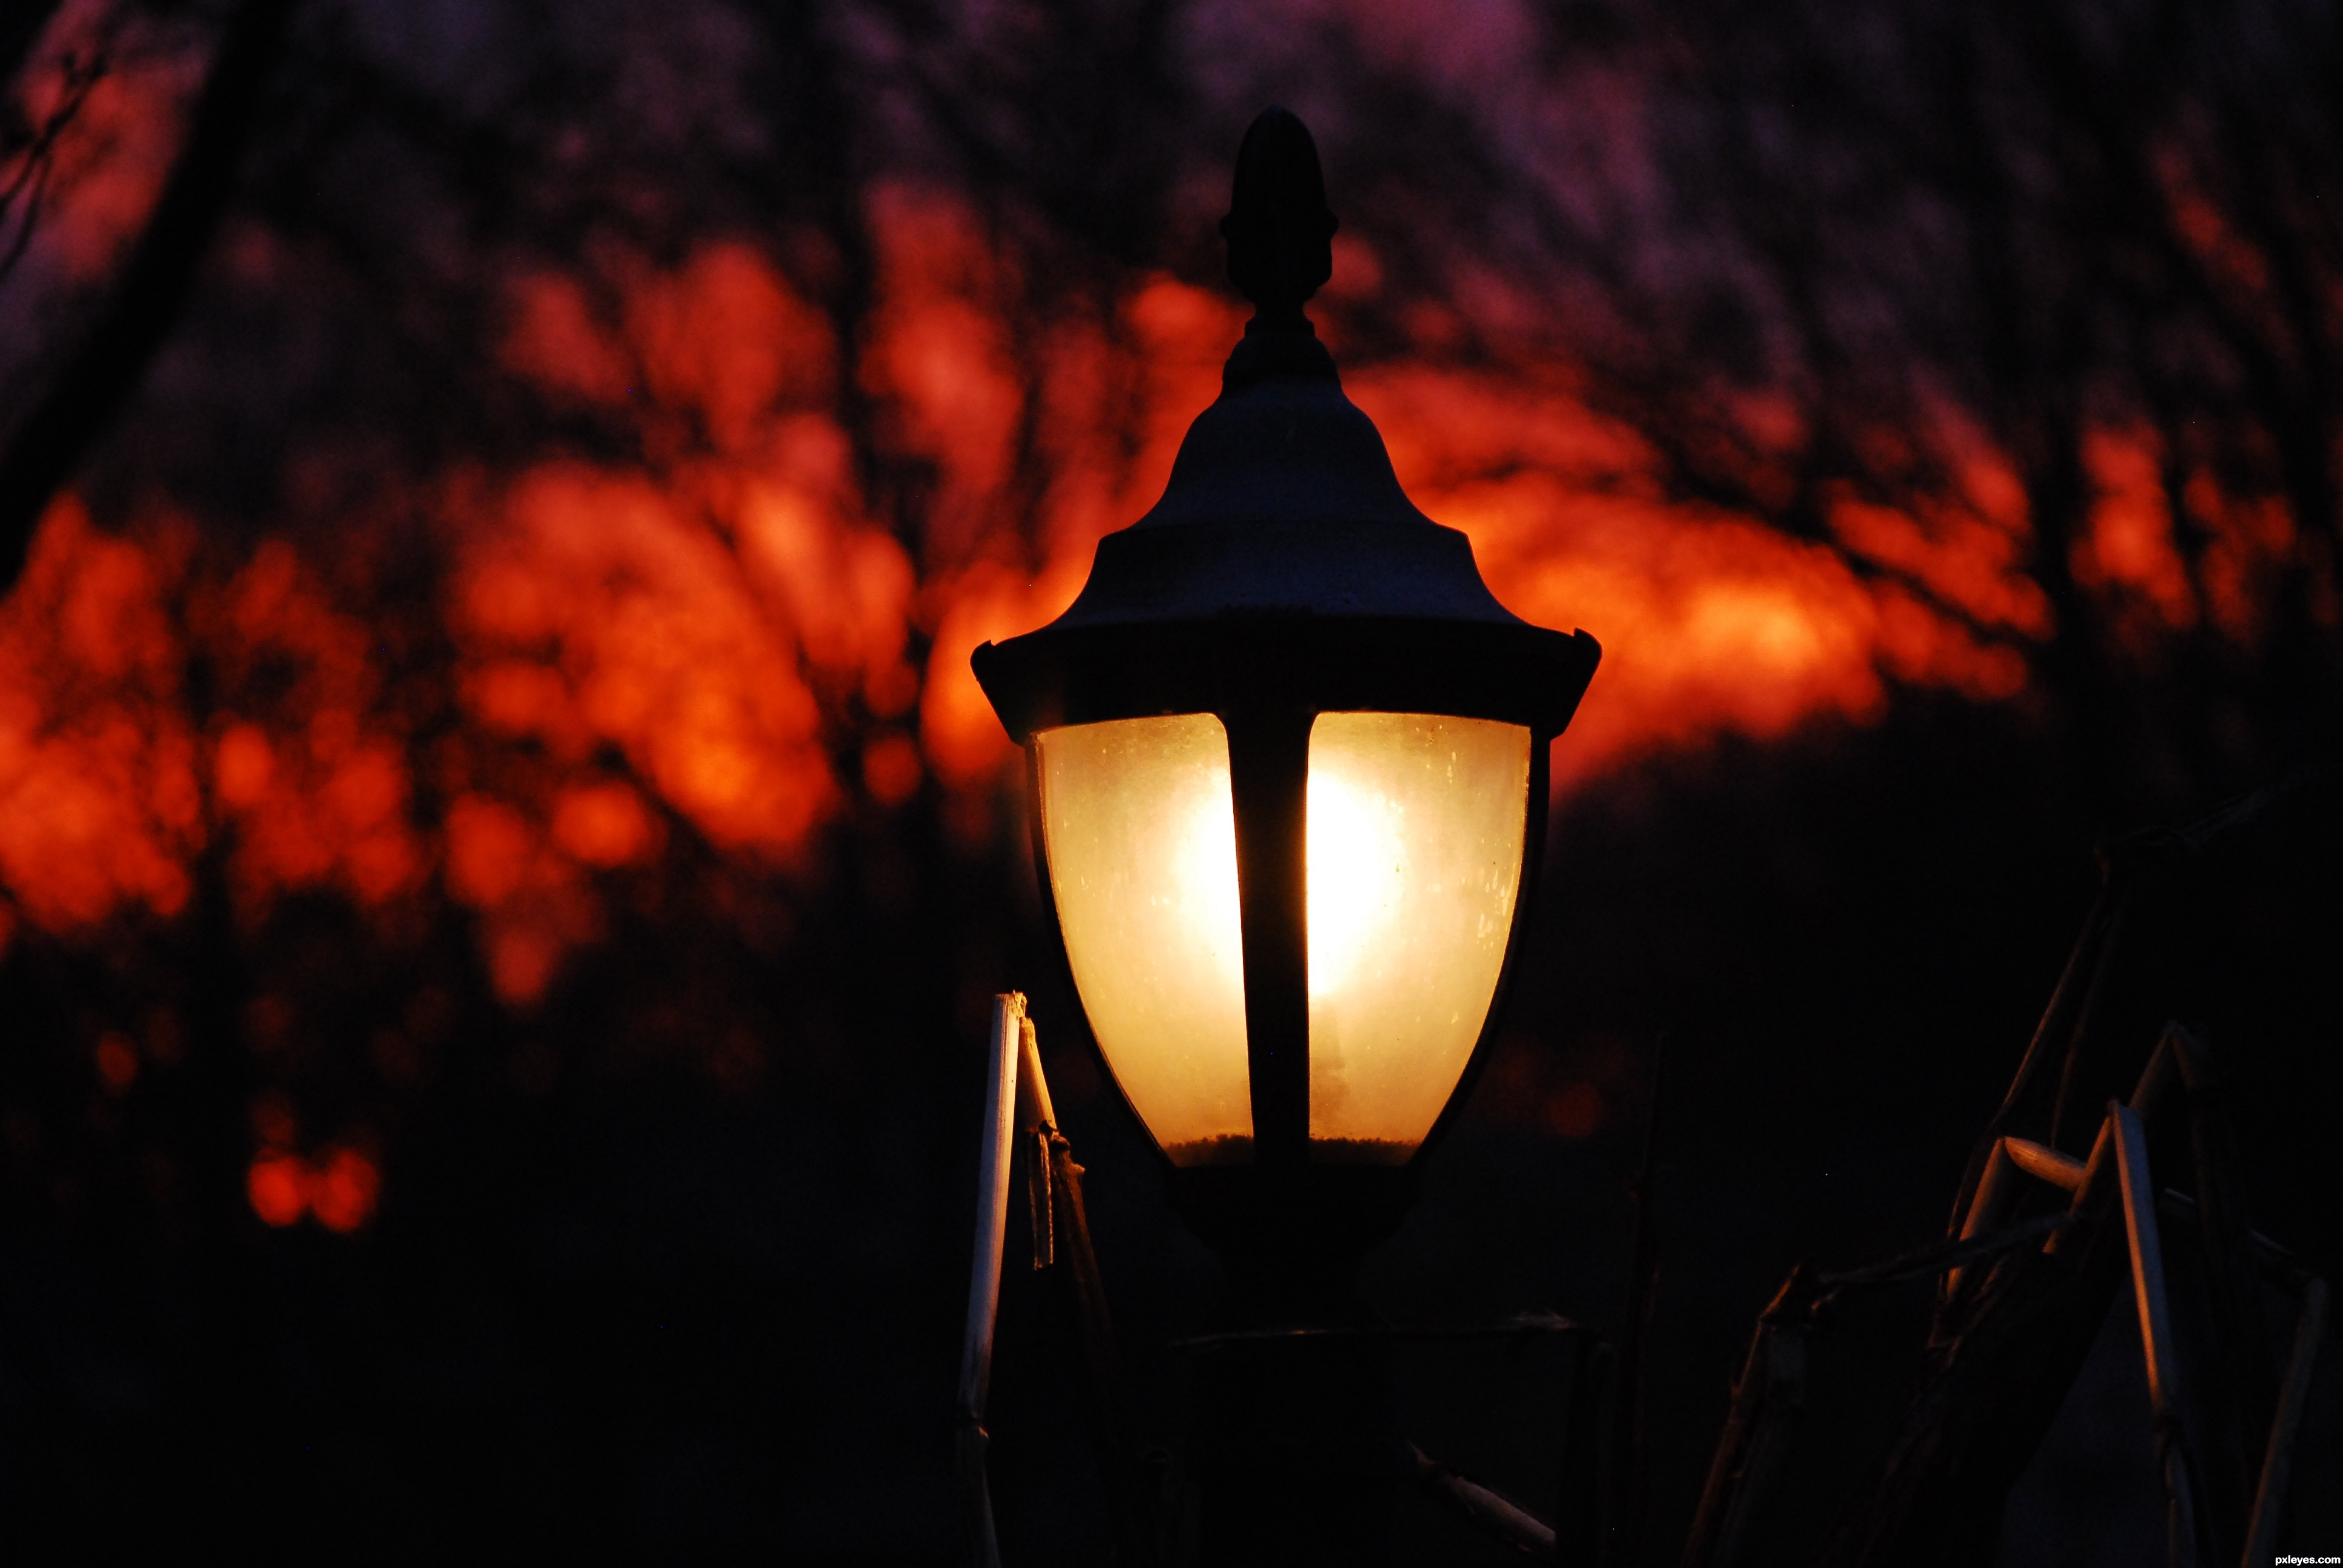 sunset house lamp picture, by Momof4boyoboys for: night lights ... for Night Lamp Photography  45ifm